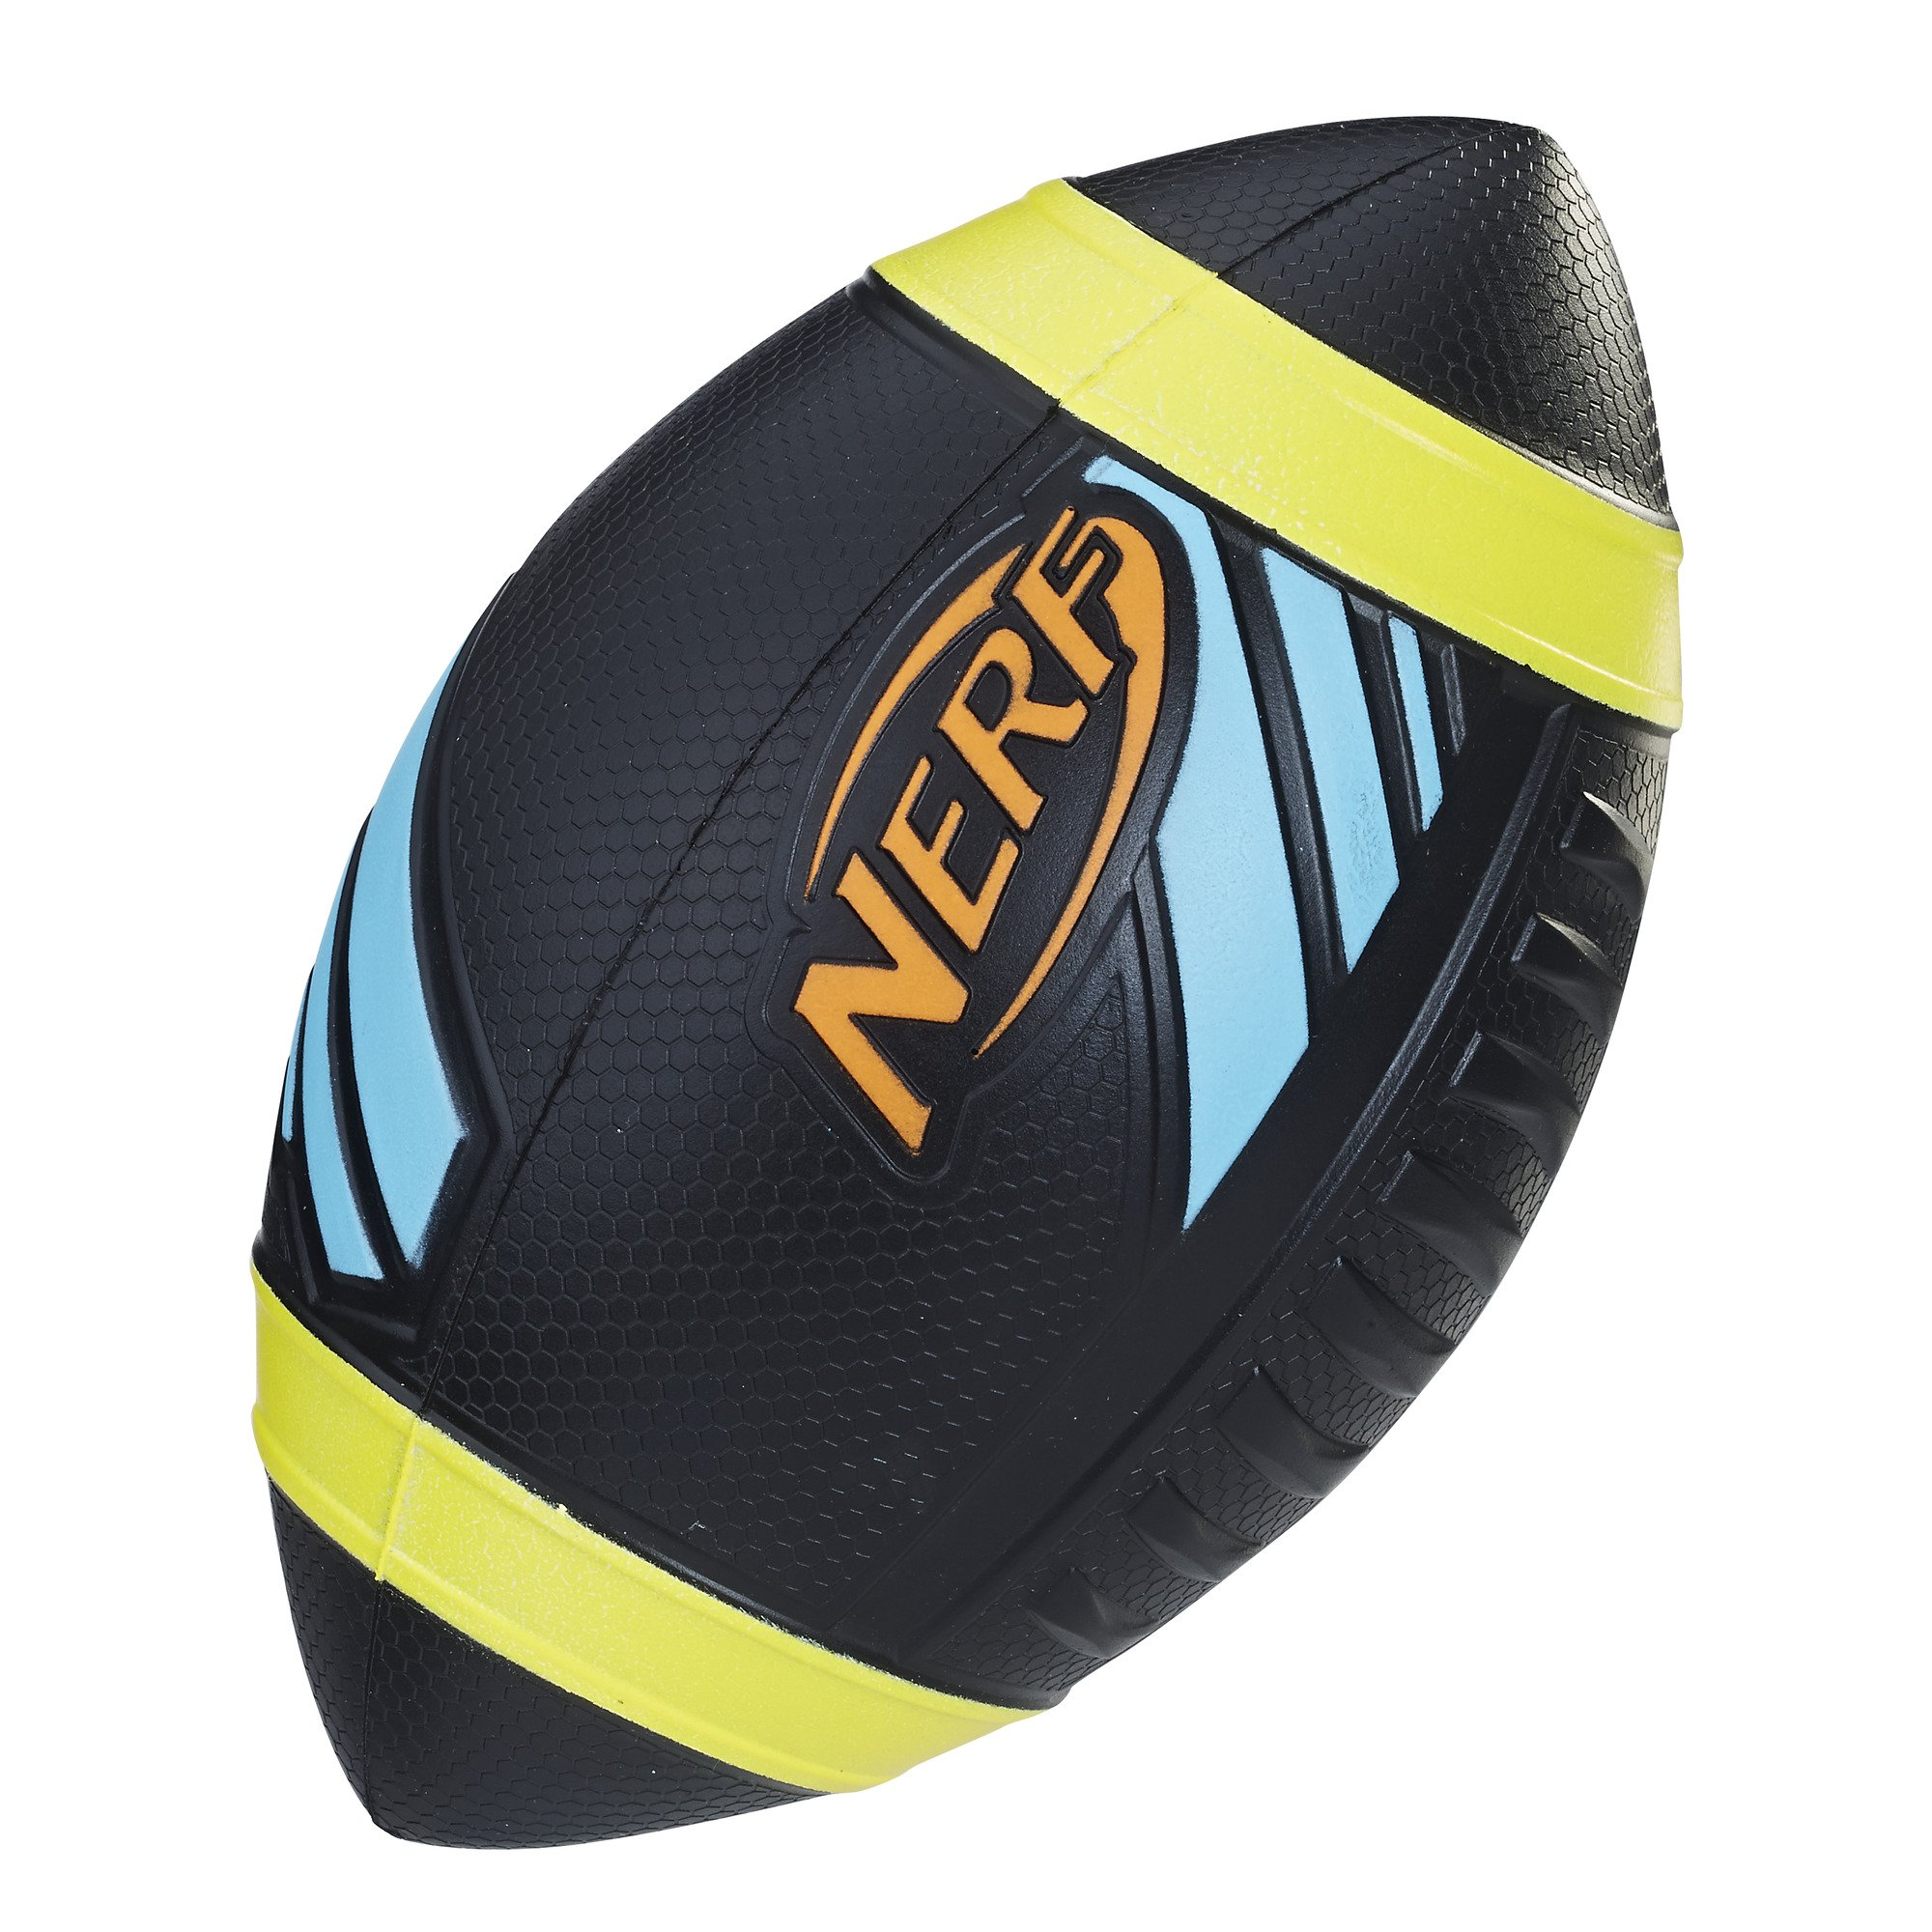 Nerf Sports Pro Grip Football (black football) by NERF